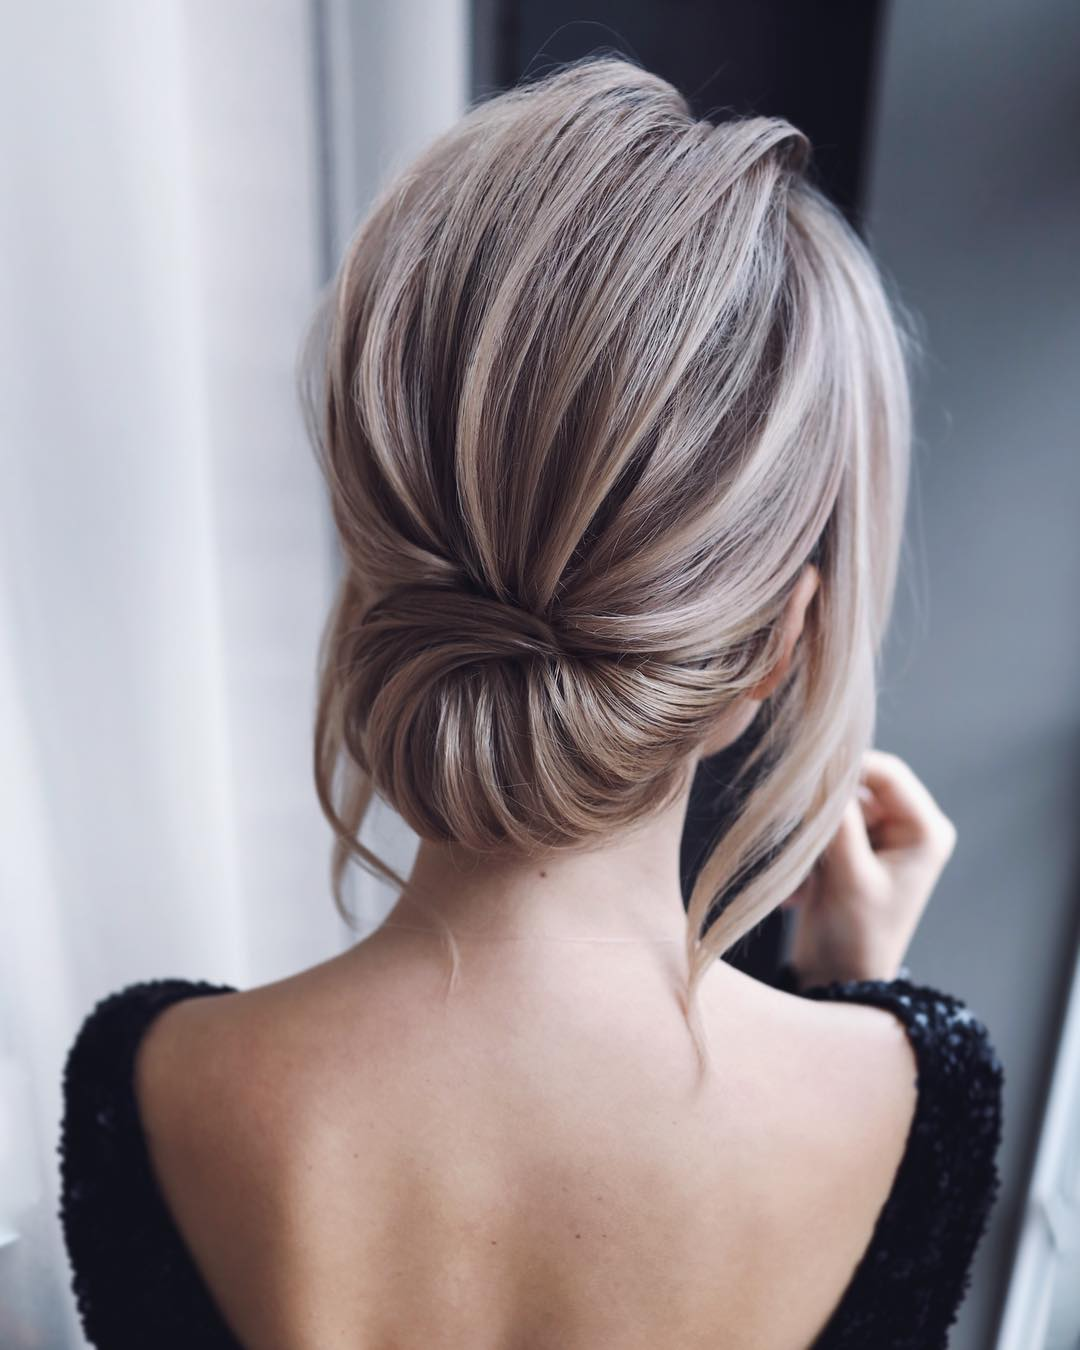 Best Updo Hairstyles for Medium Length Hair, Prom and Homecoming Hair Style Ideas